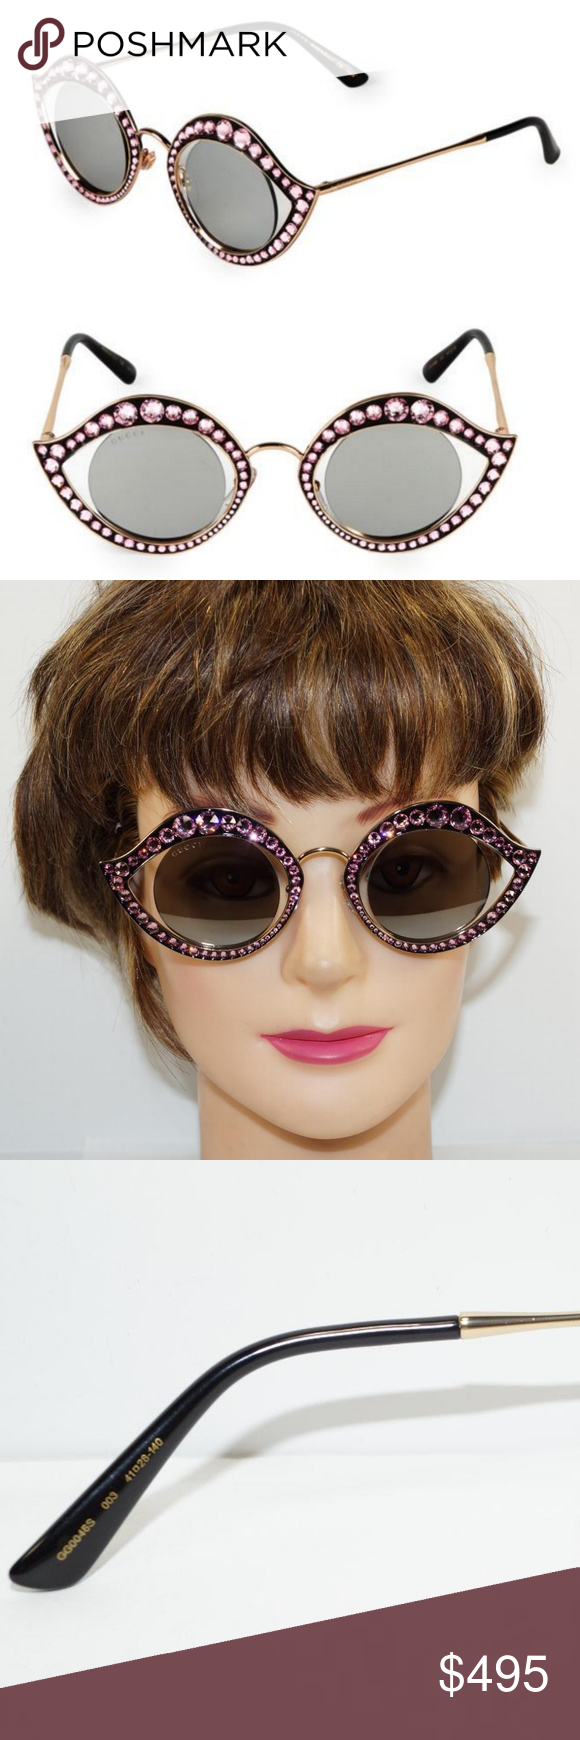 a3fd2df2108 GUCCI CAT EYE LIPS GOLD PINK CRYSTAL SUNGLASSES Brand New 100% Authentic GUCCI  LIPS CRYSTAL